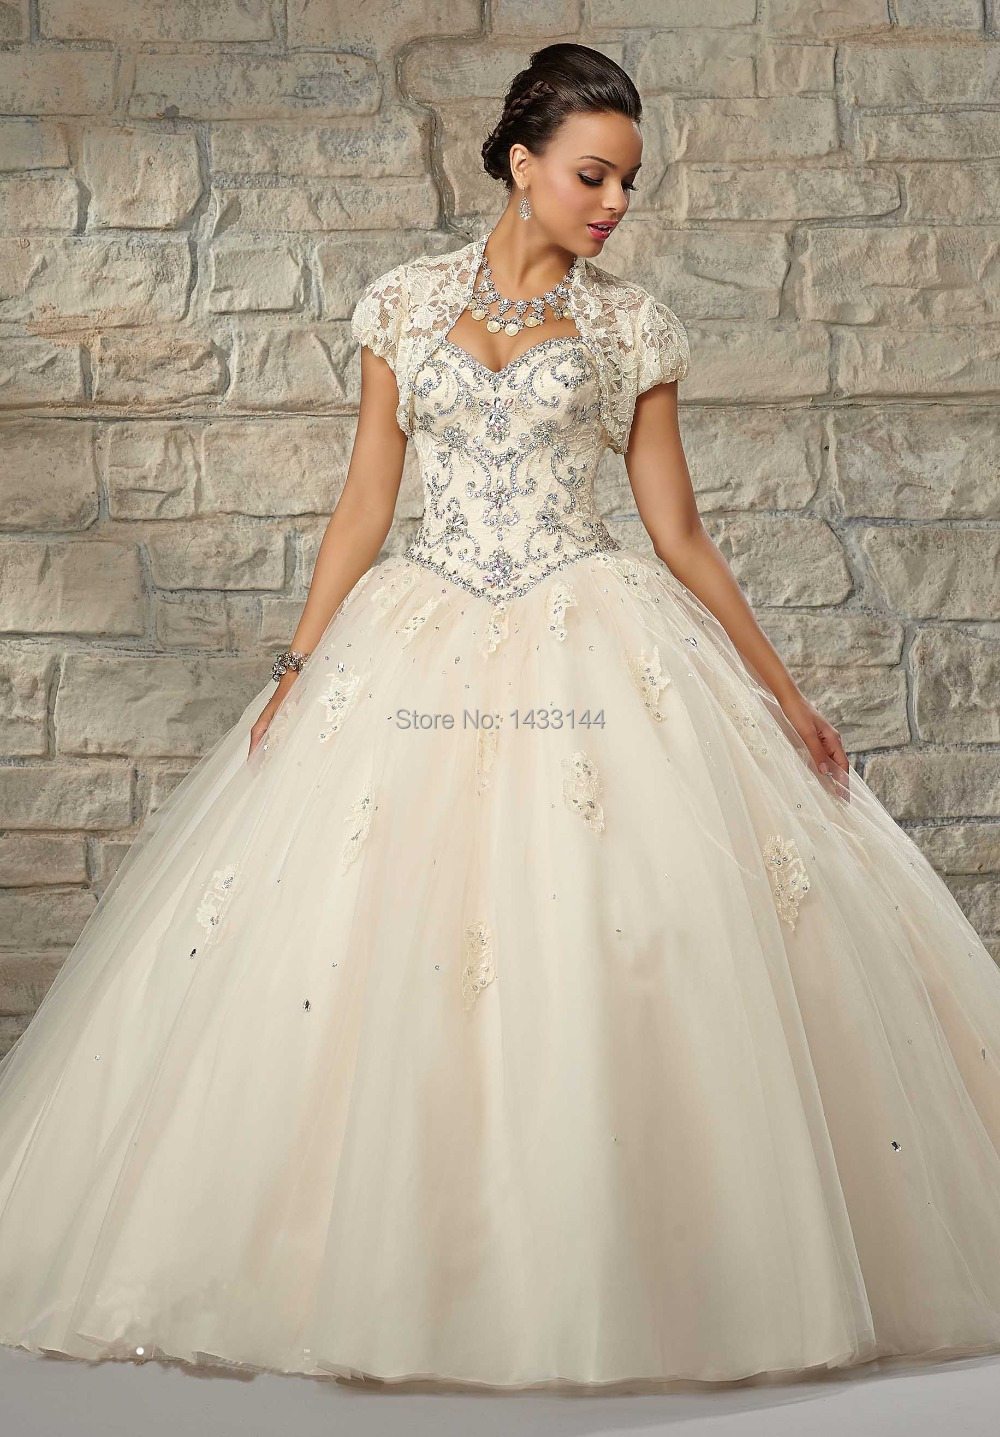 Plus Size Dresses for Sweet 16 | Dress images